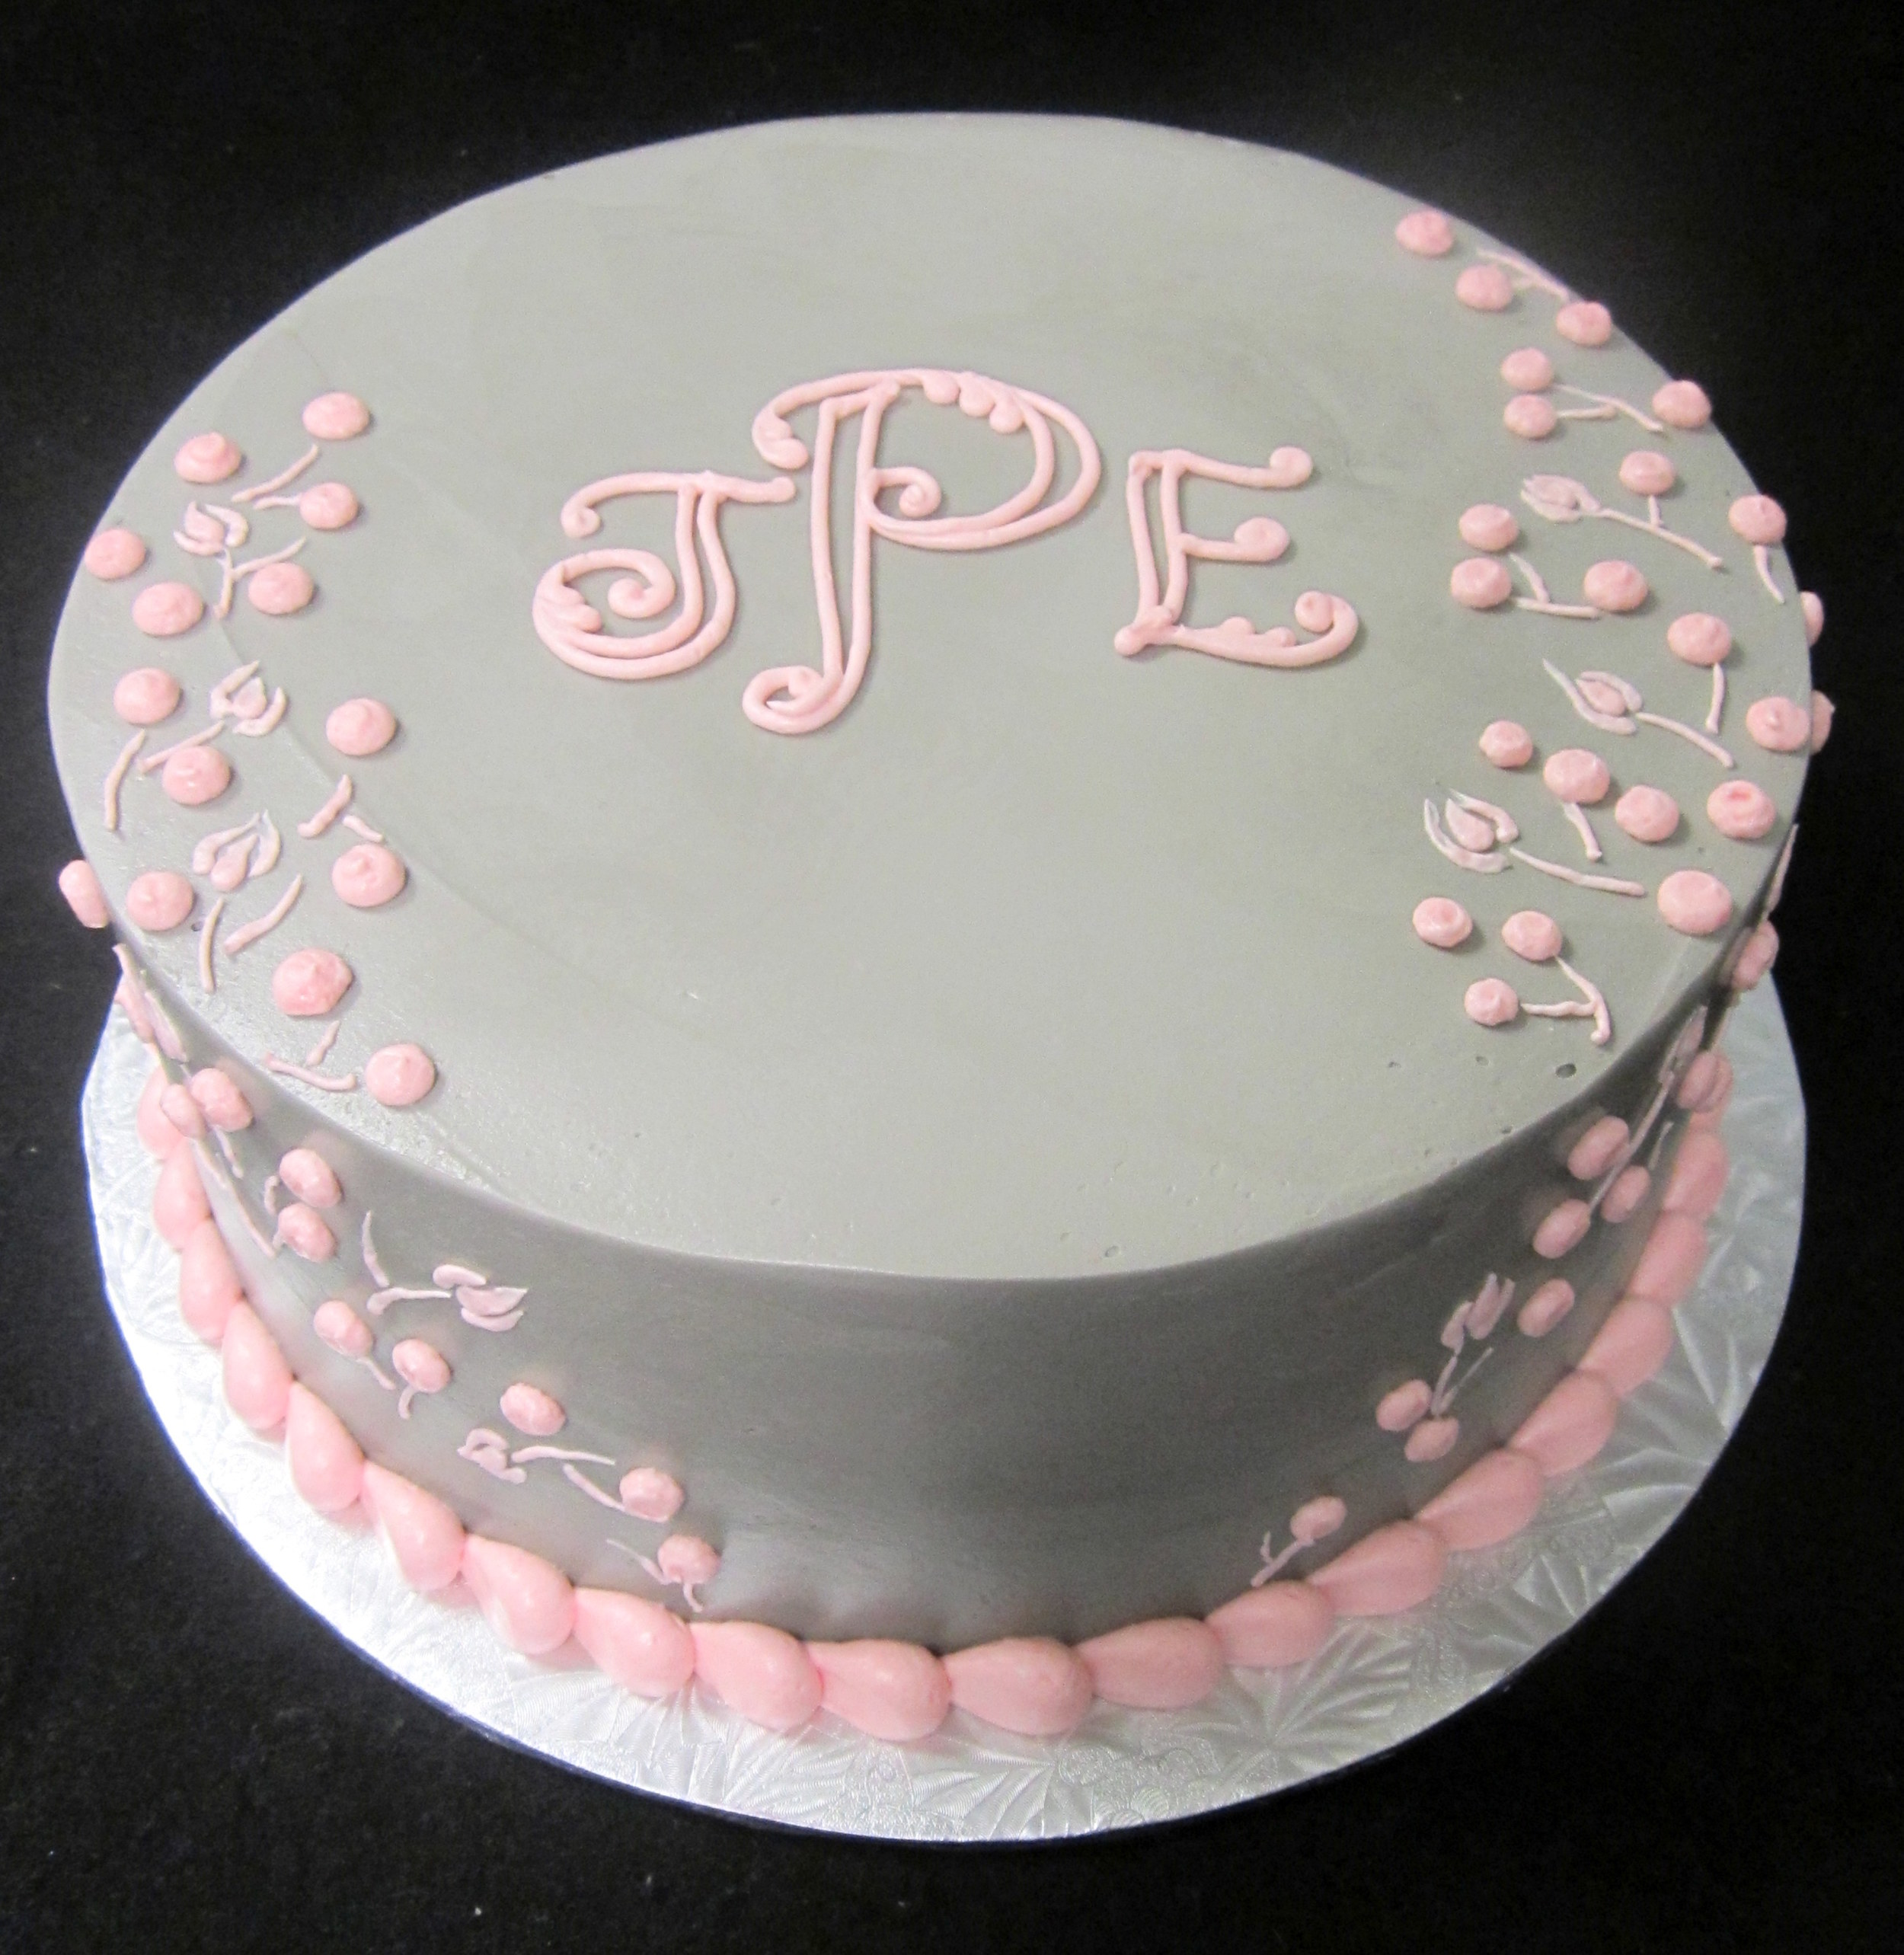 monogram and berries in light pink on gray.jpg